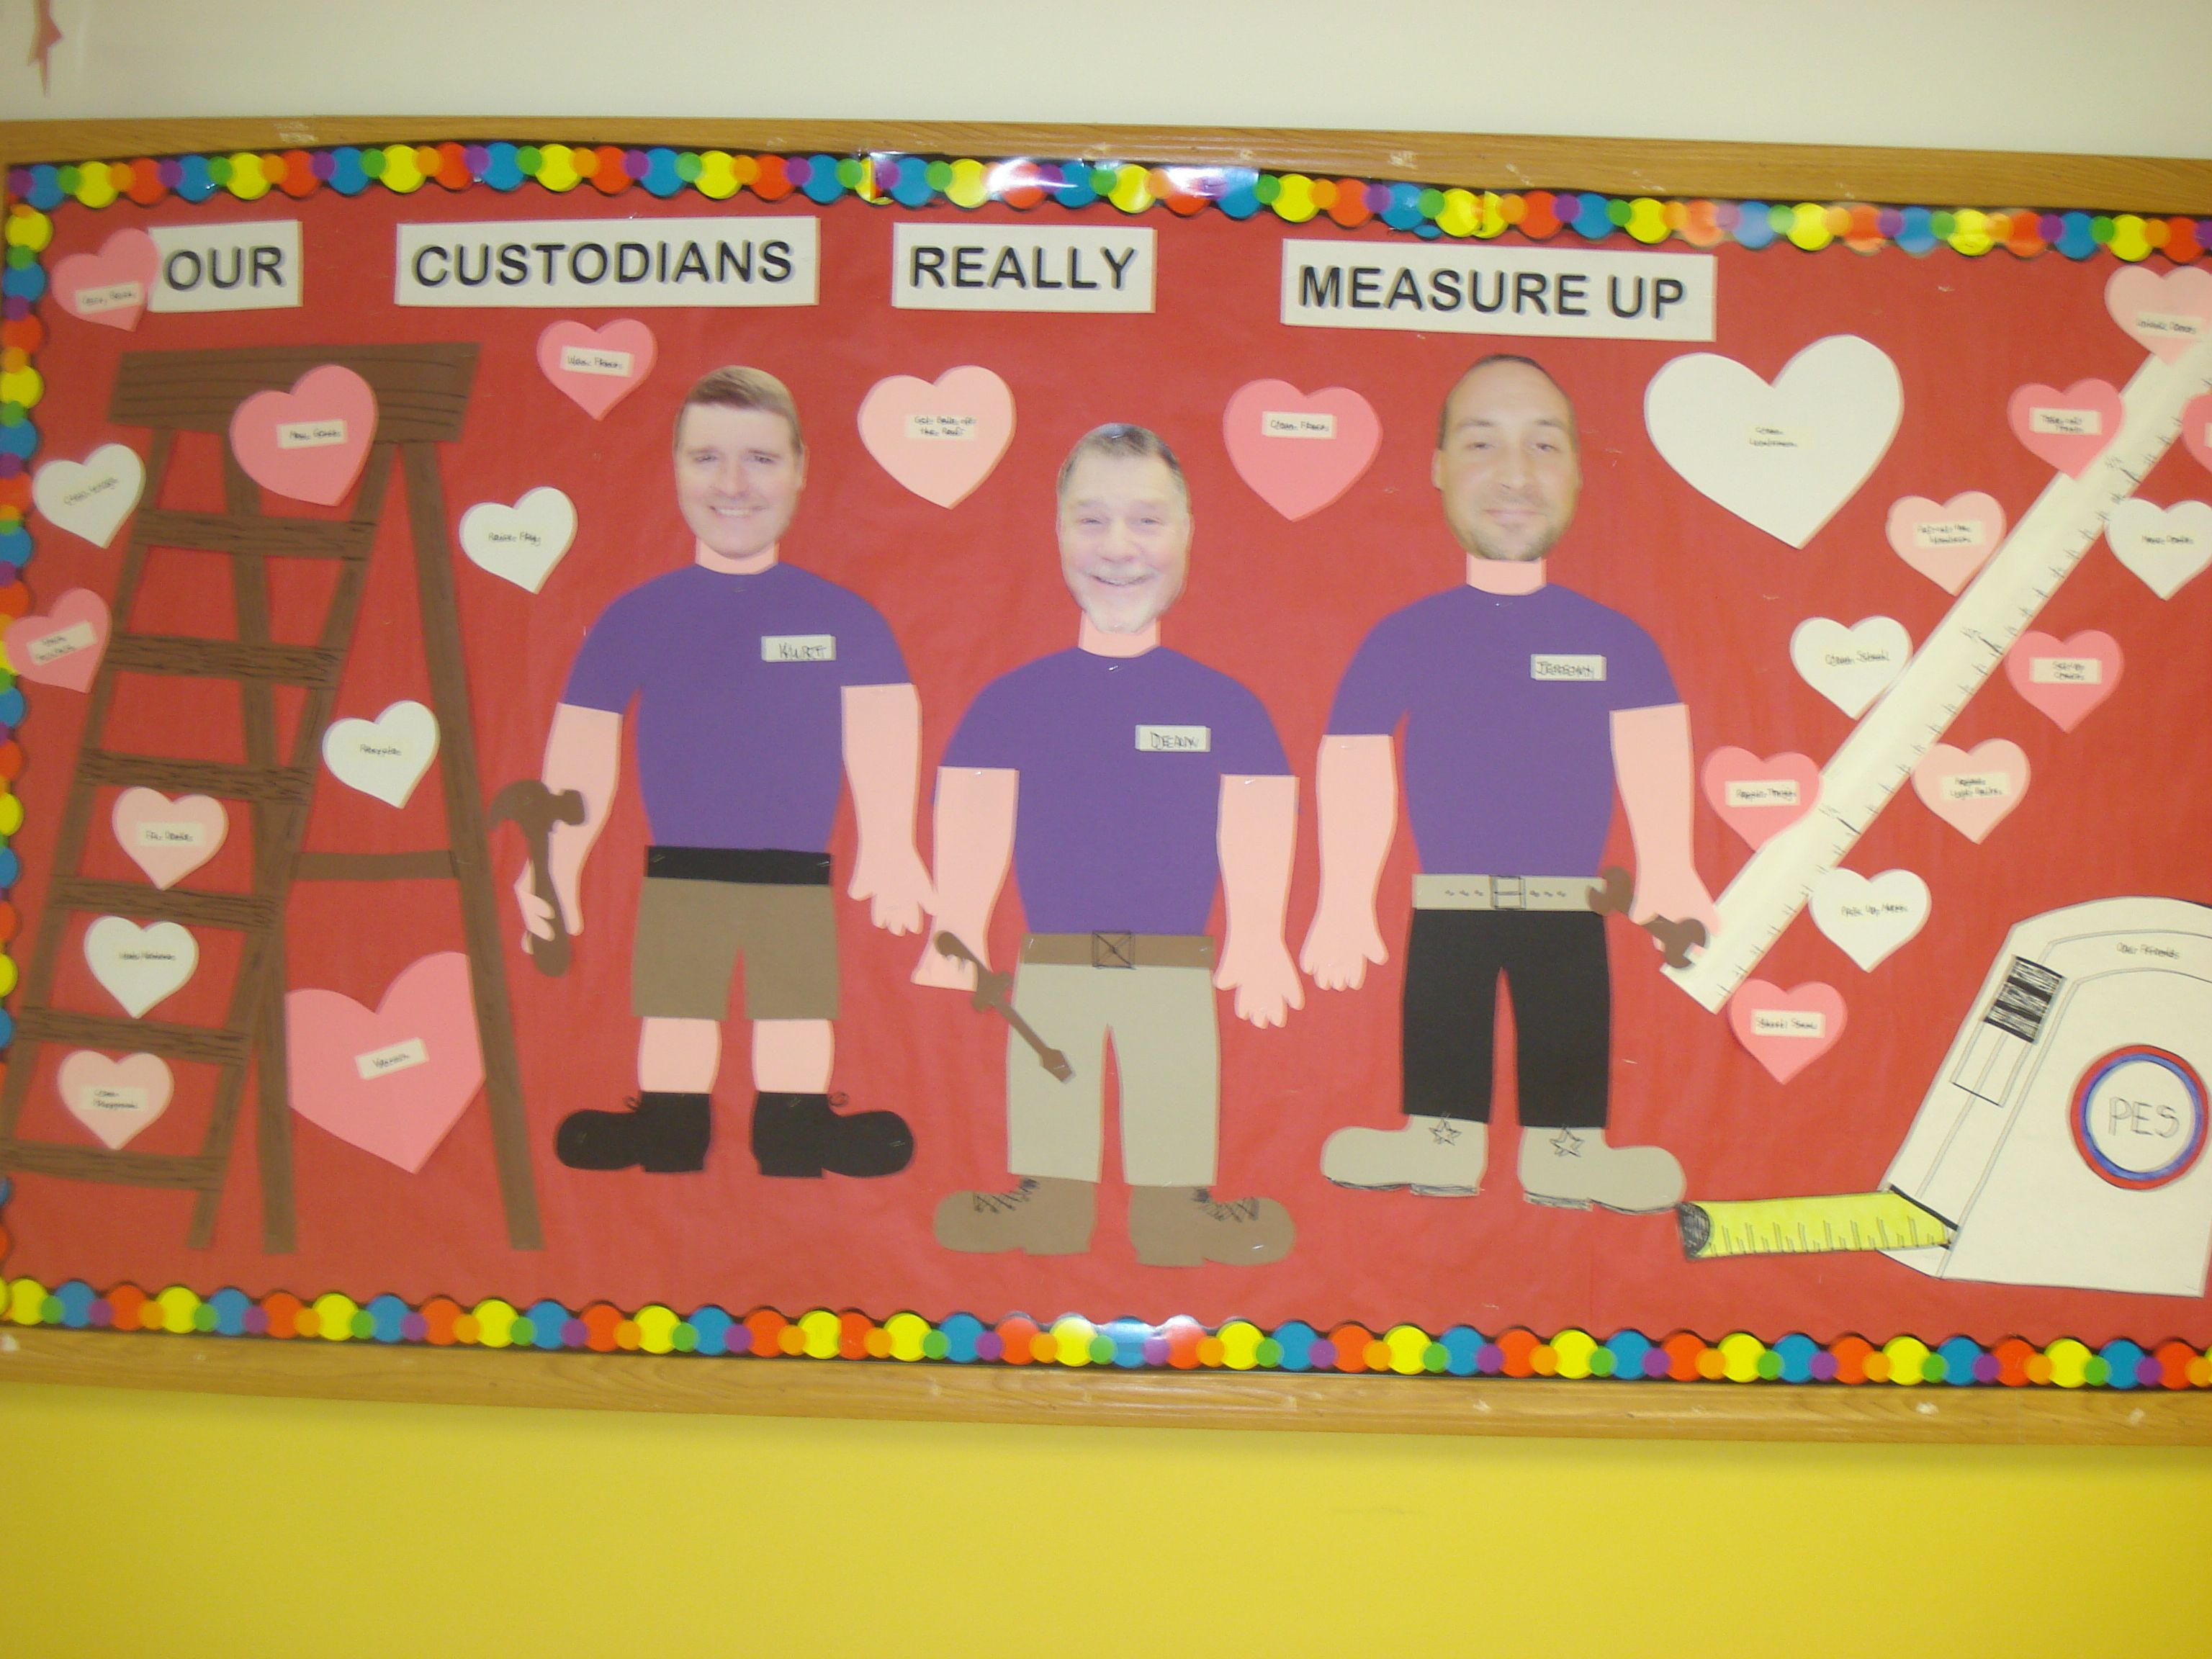 custodians appreciation day pta crafts creative appreciation to our custodians all the things they do are on the hearts